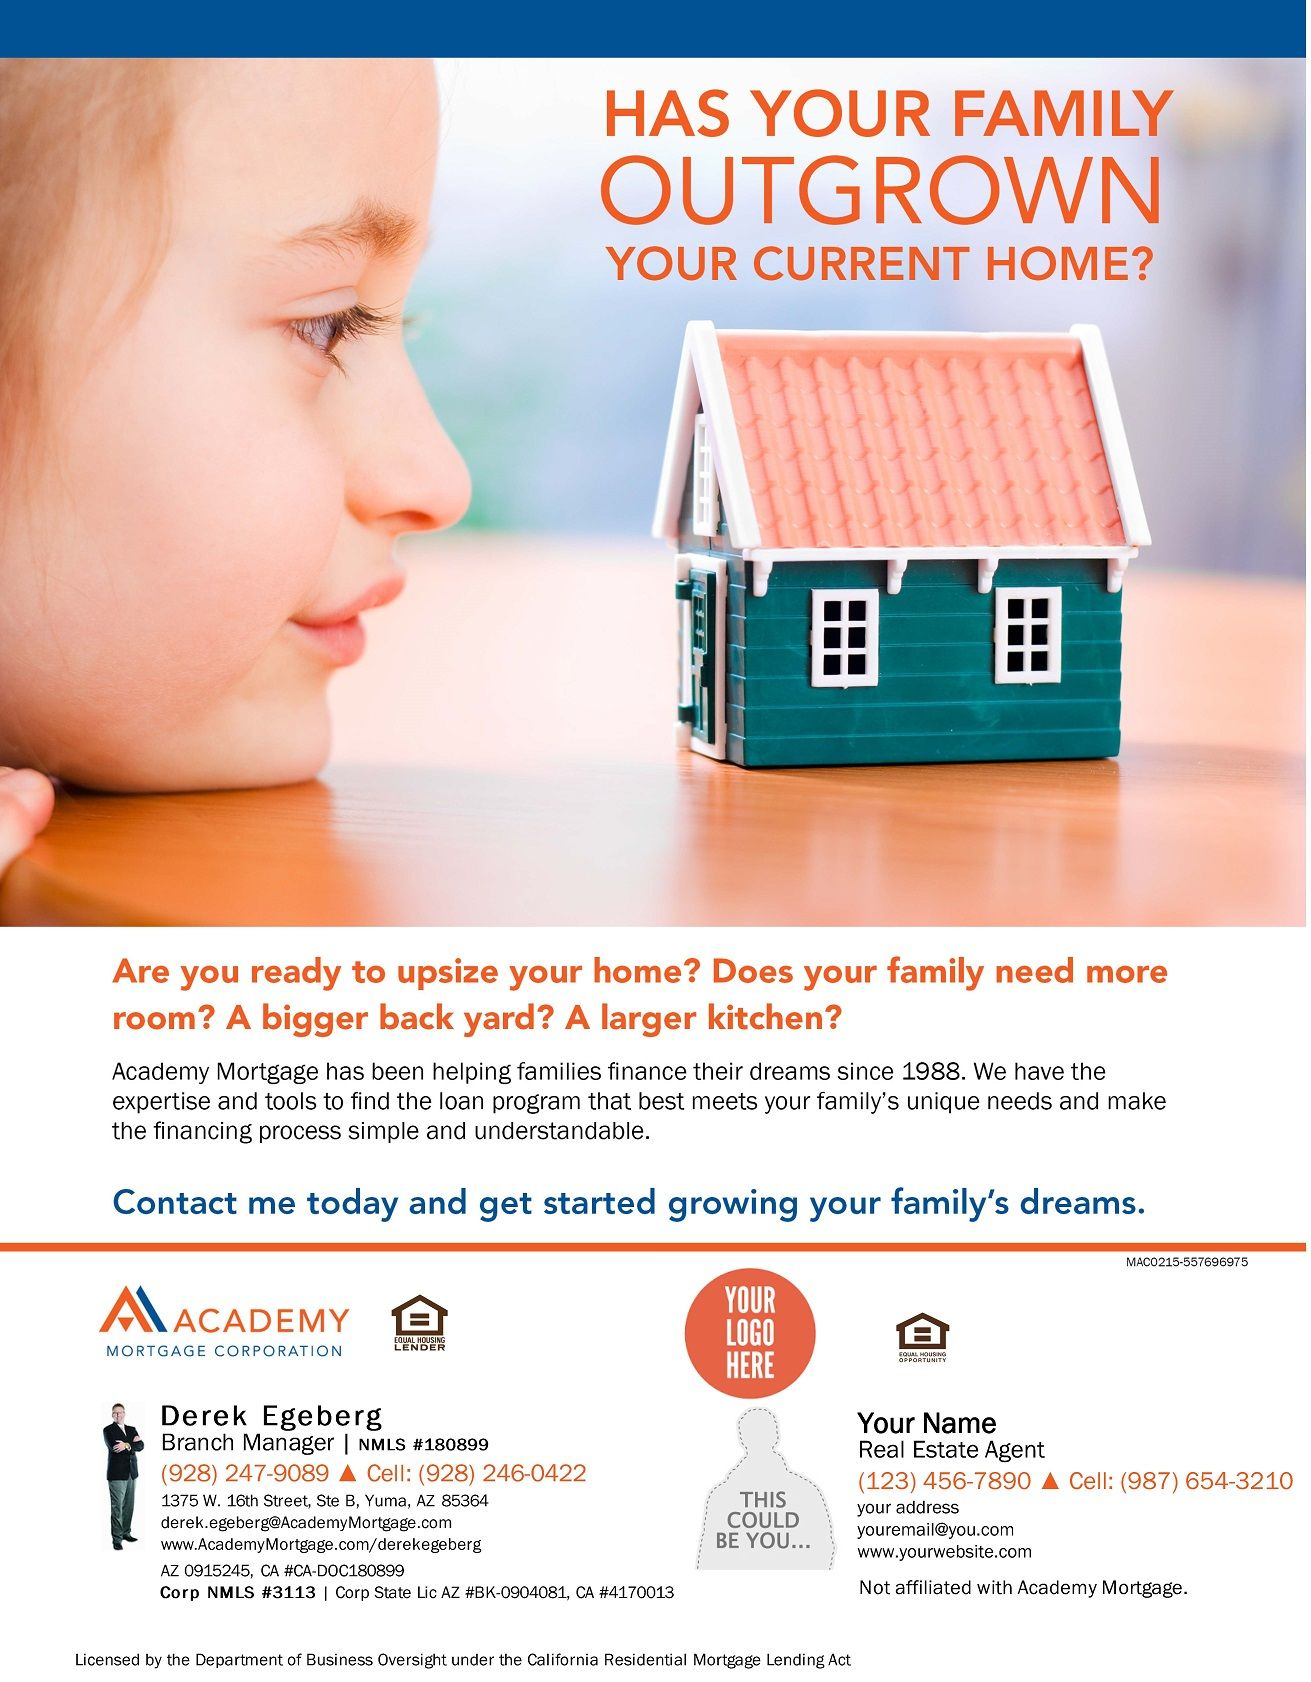 Has Your Family Outgrown Your Current Home Mortgage Marketing Family Finance Mortgage